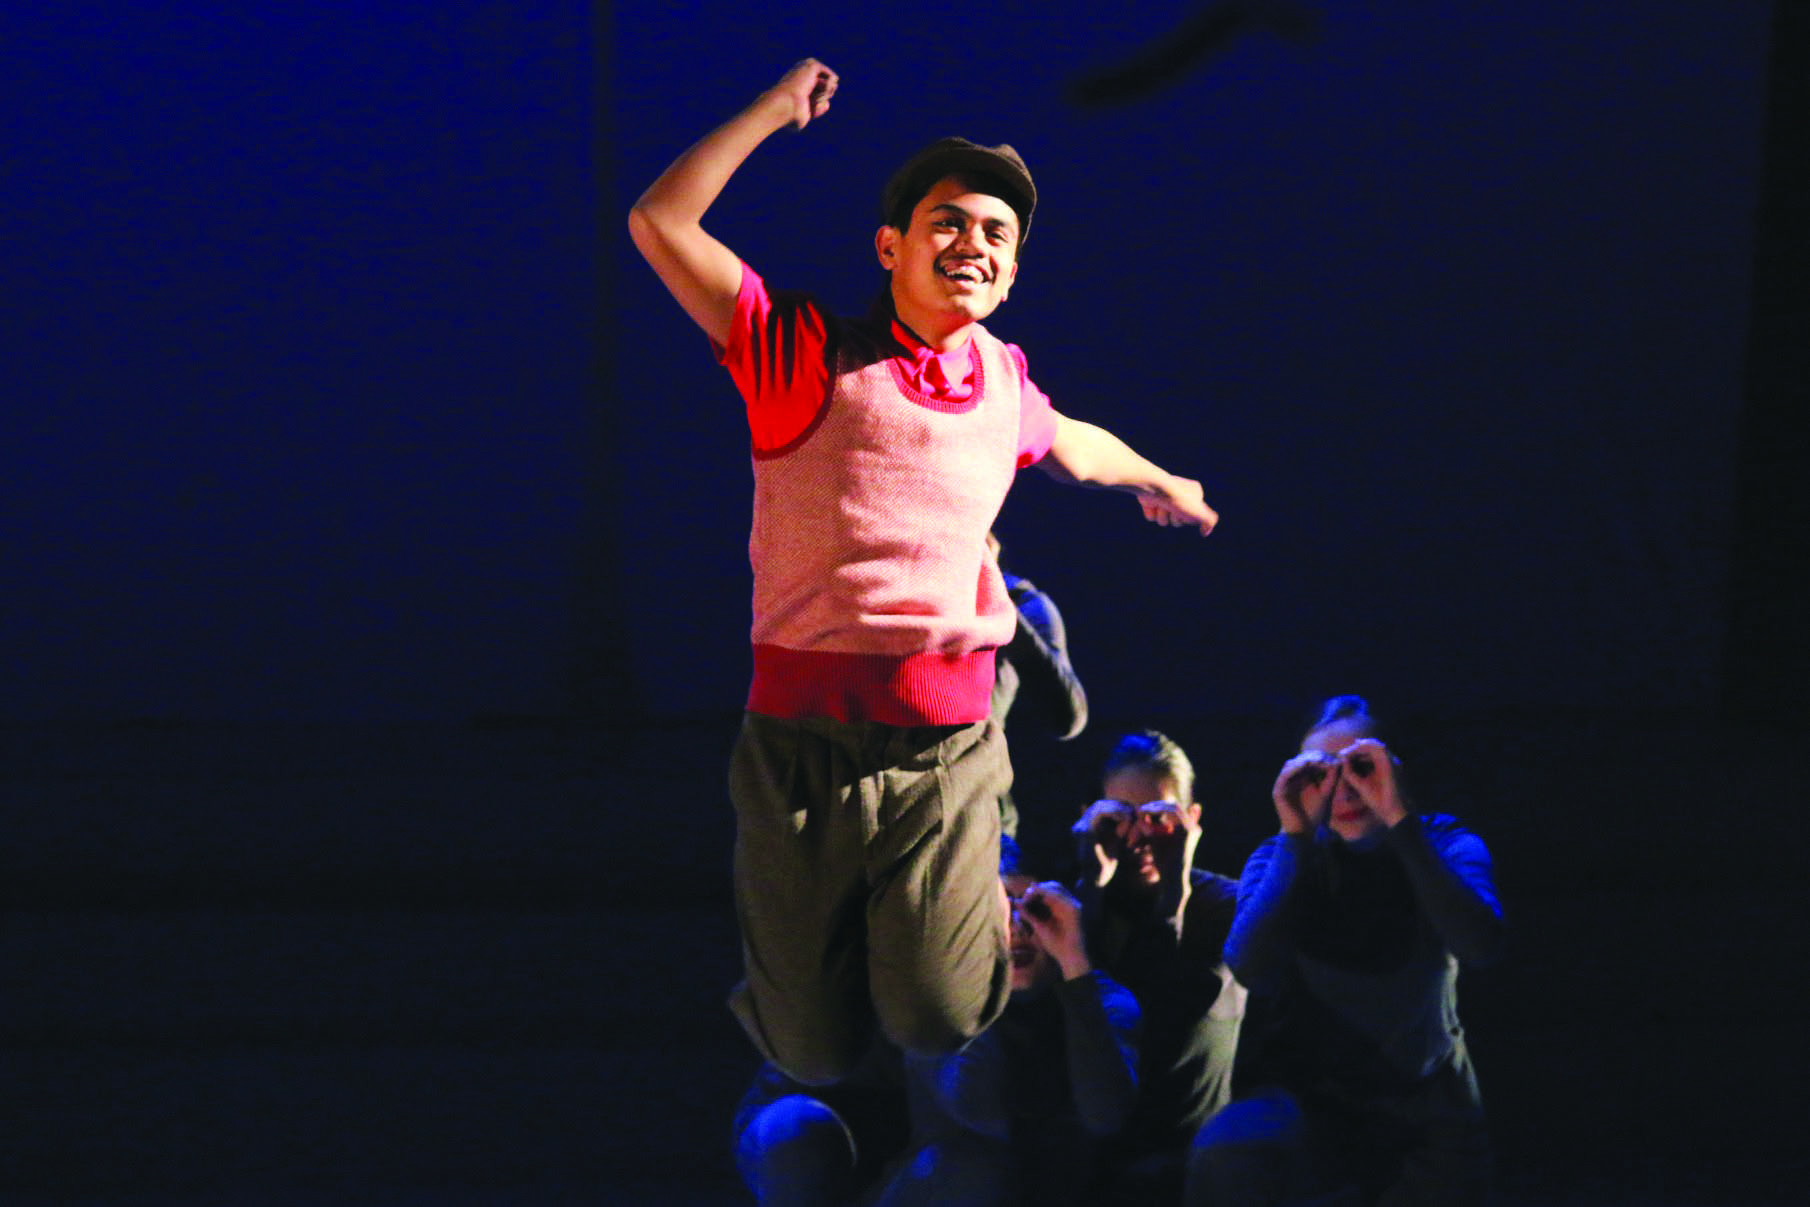 JUMP FOR JOY: Erick Gredonia '17, who plays Charlie, celebrates after being given the key to Willy Wonka's factory. Credit: Pavan Tauh/Chronicle